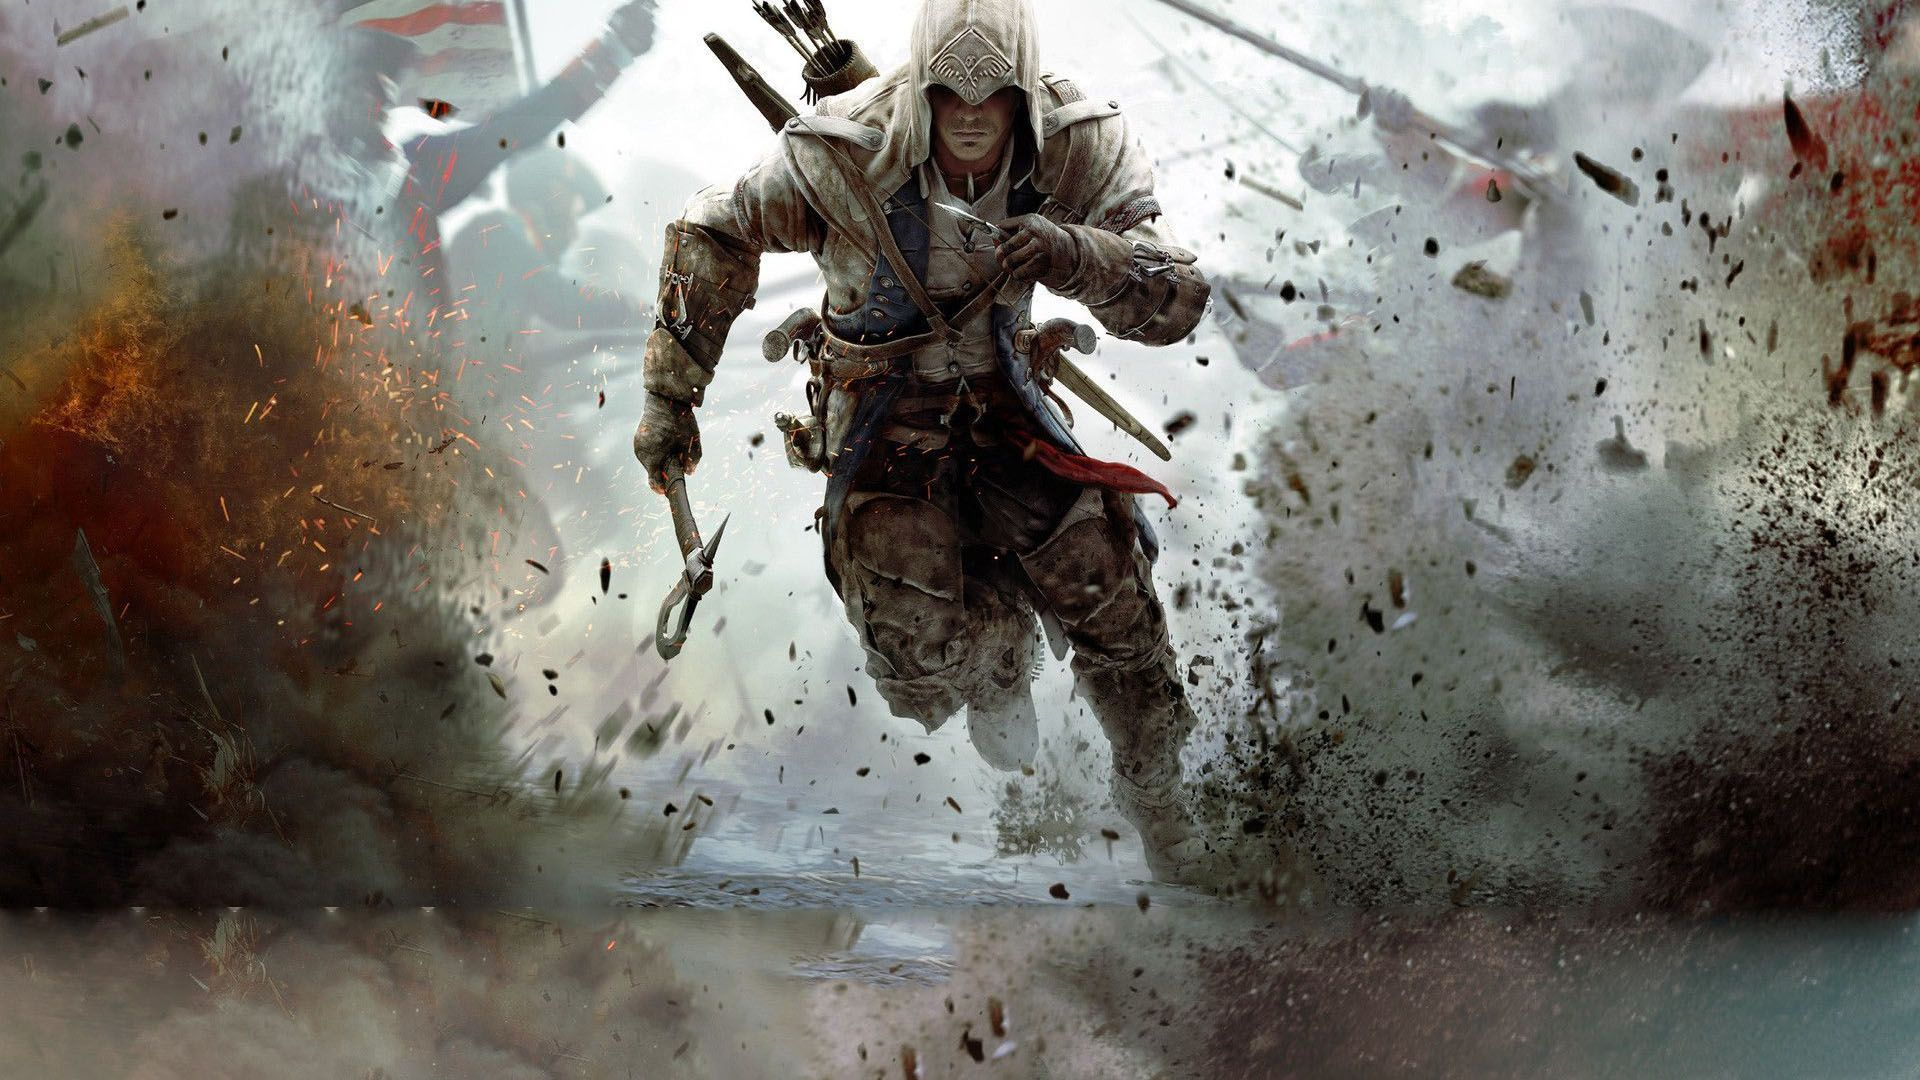 Assassins Creed 3 | Assassins Creed 3 Kapak Çalışması